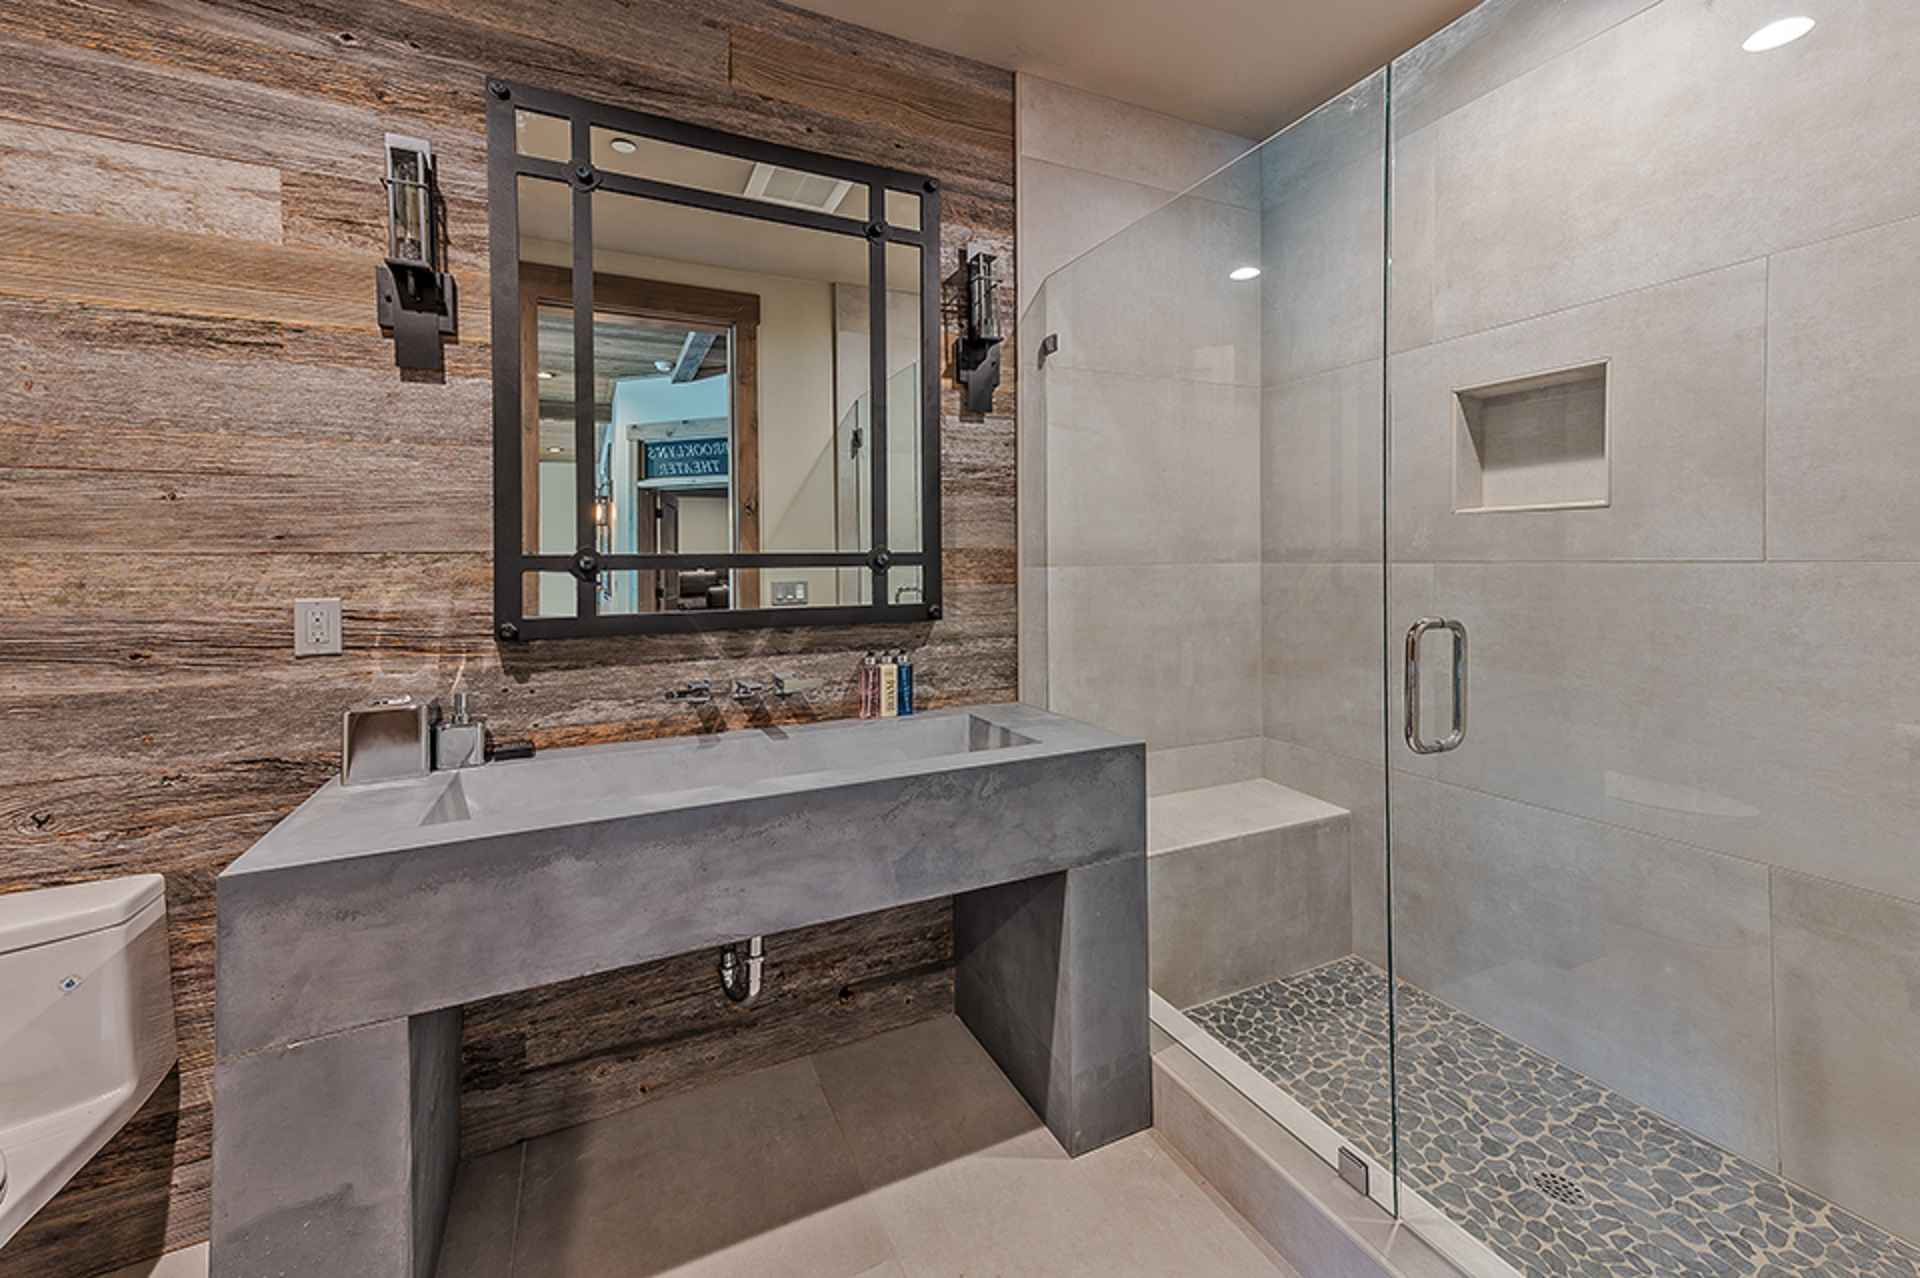 prop_3914_1564424083_13_bedroom_15_bathroom_mega_mansion.jpg